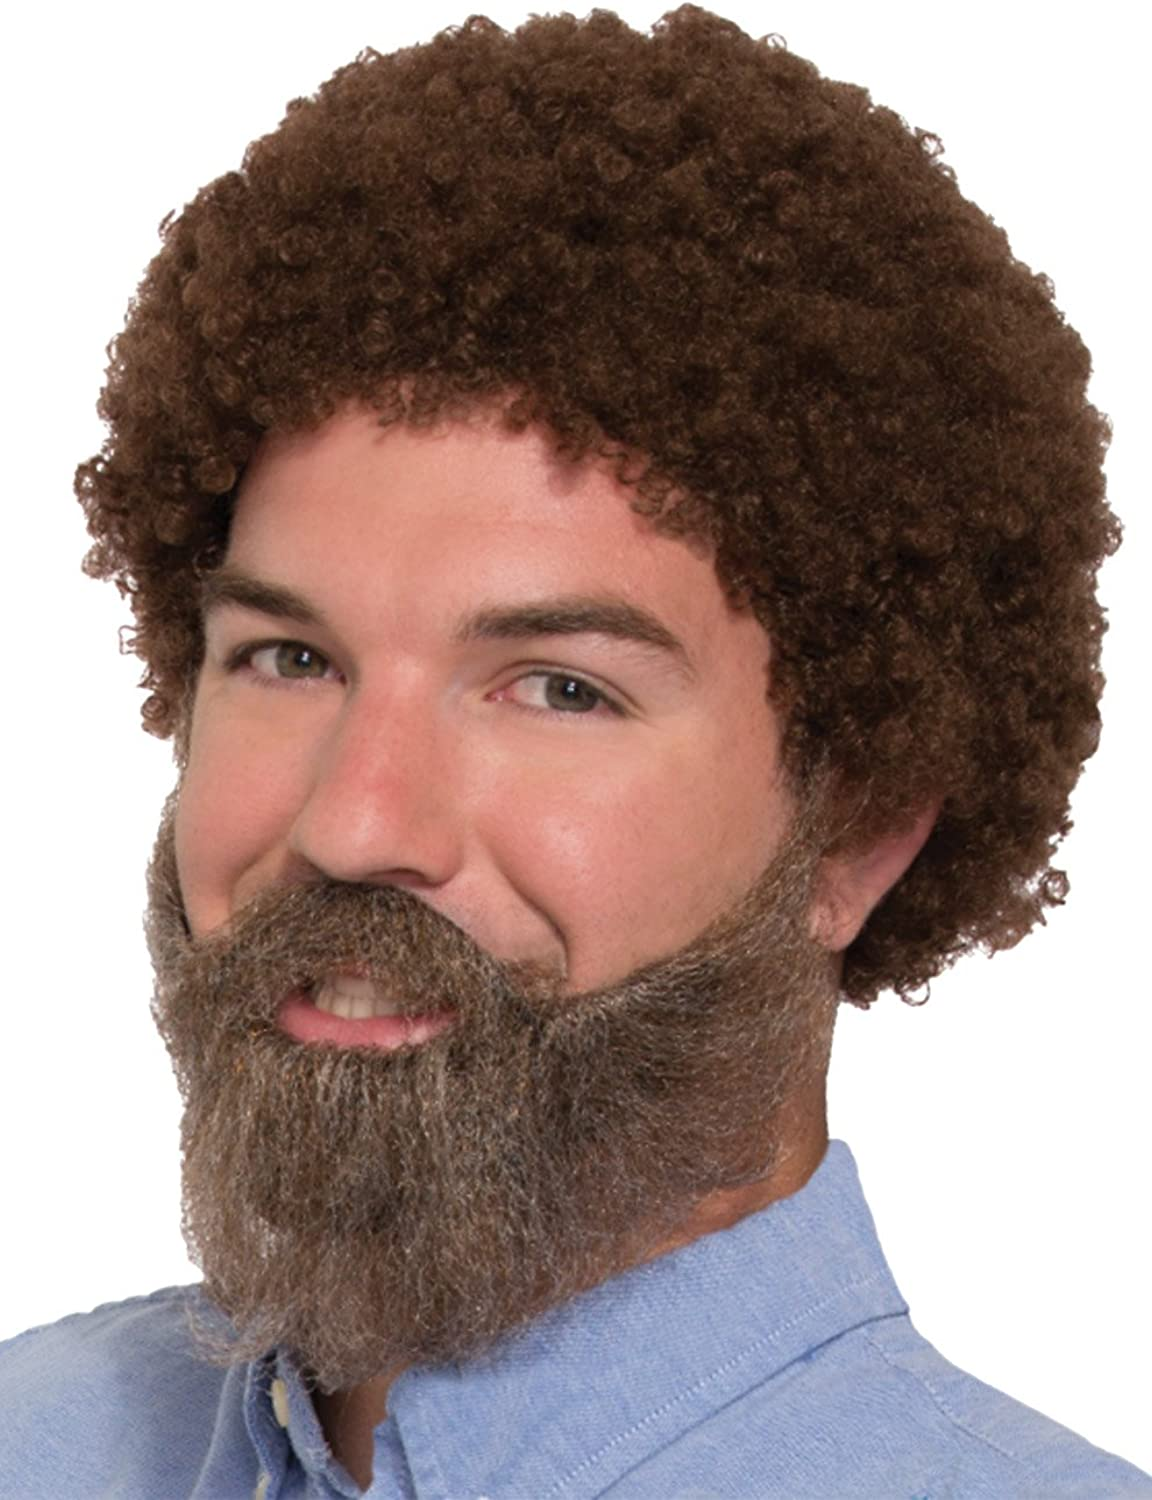 80s costumes for guys with beards